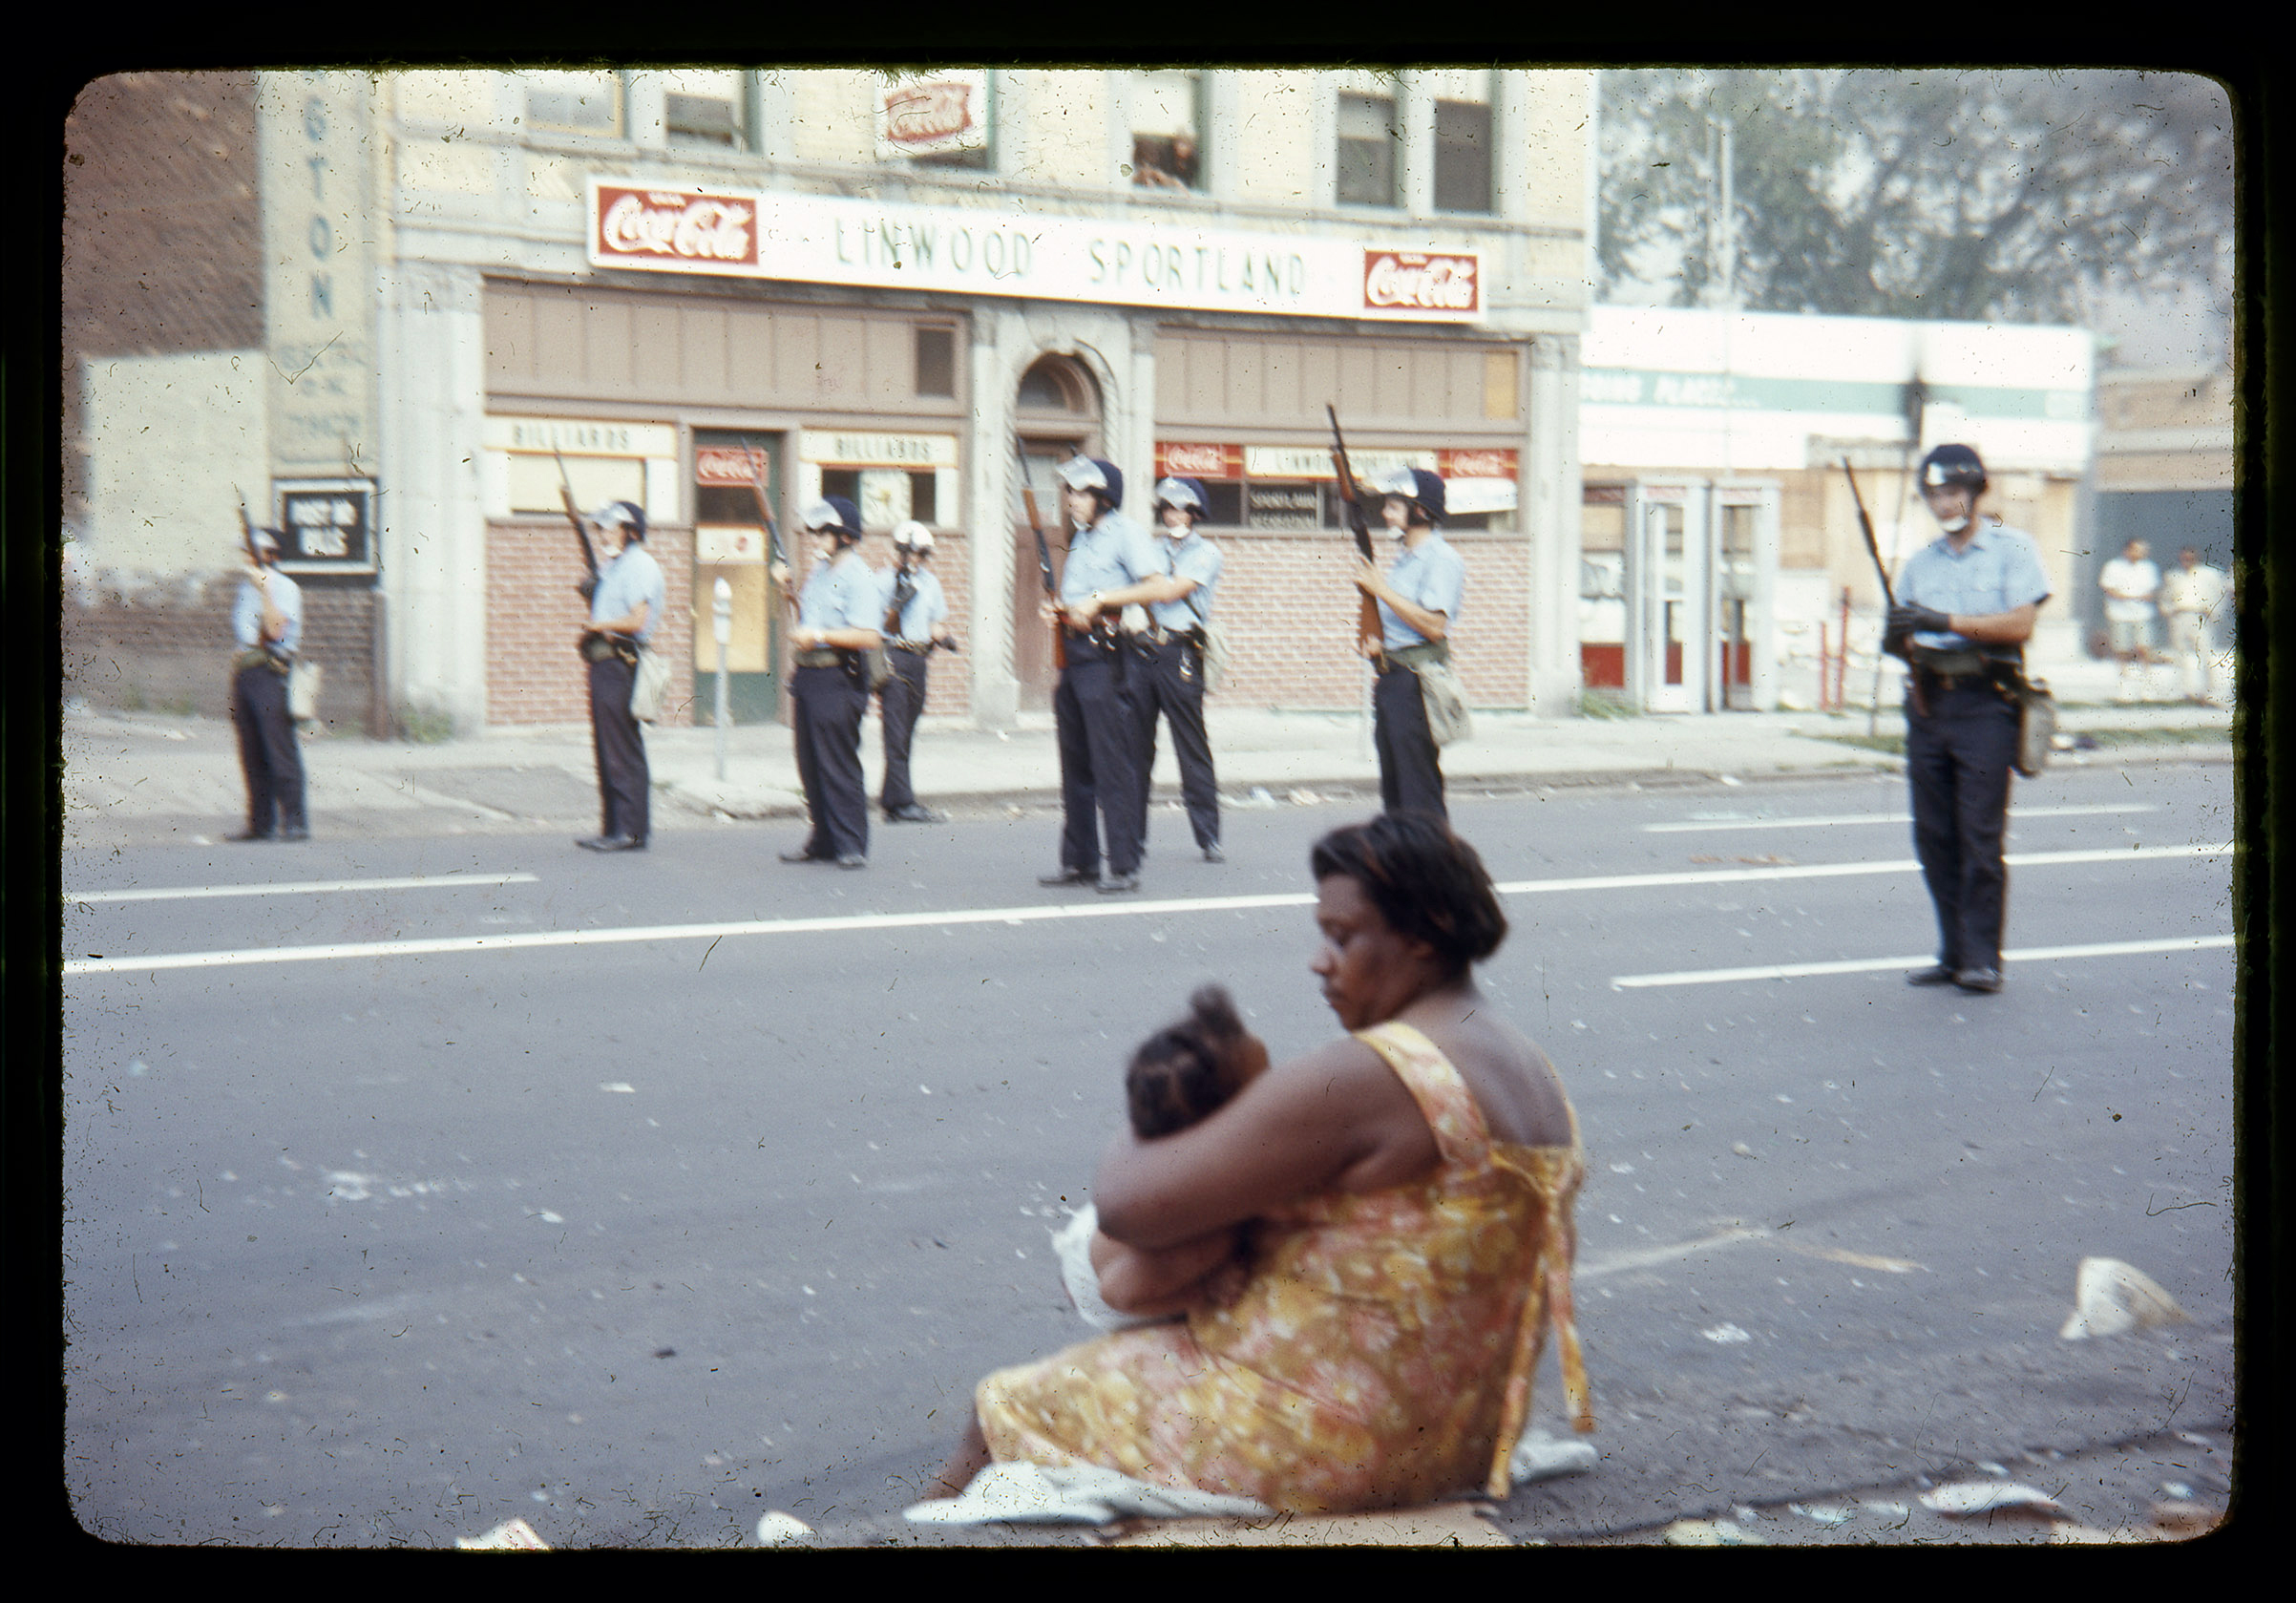 Several Detroit police officers clad in riot gear guard the streets of Detroit as a woman and child look on.